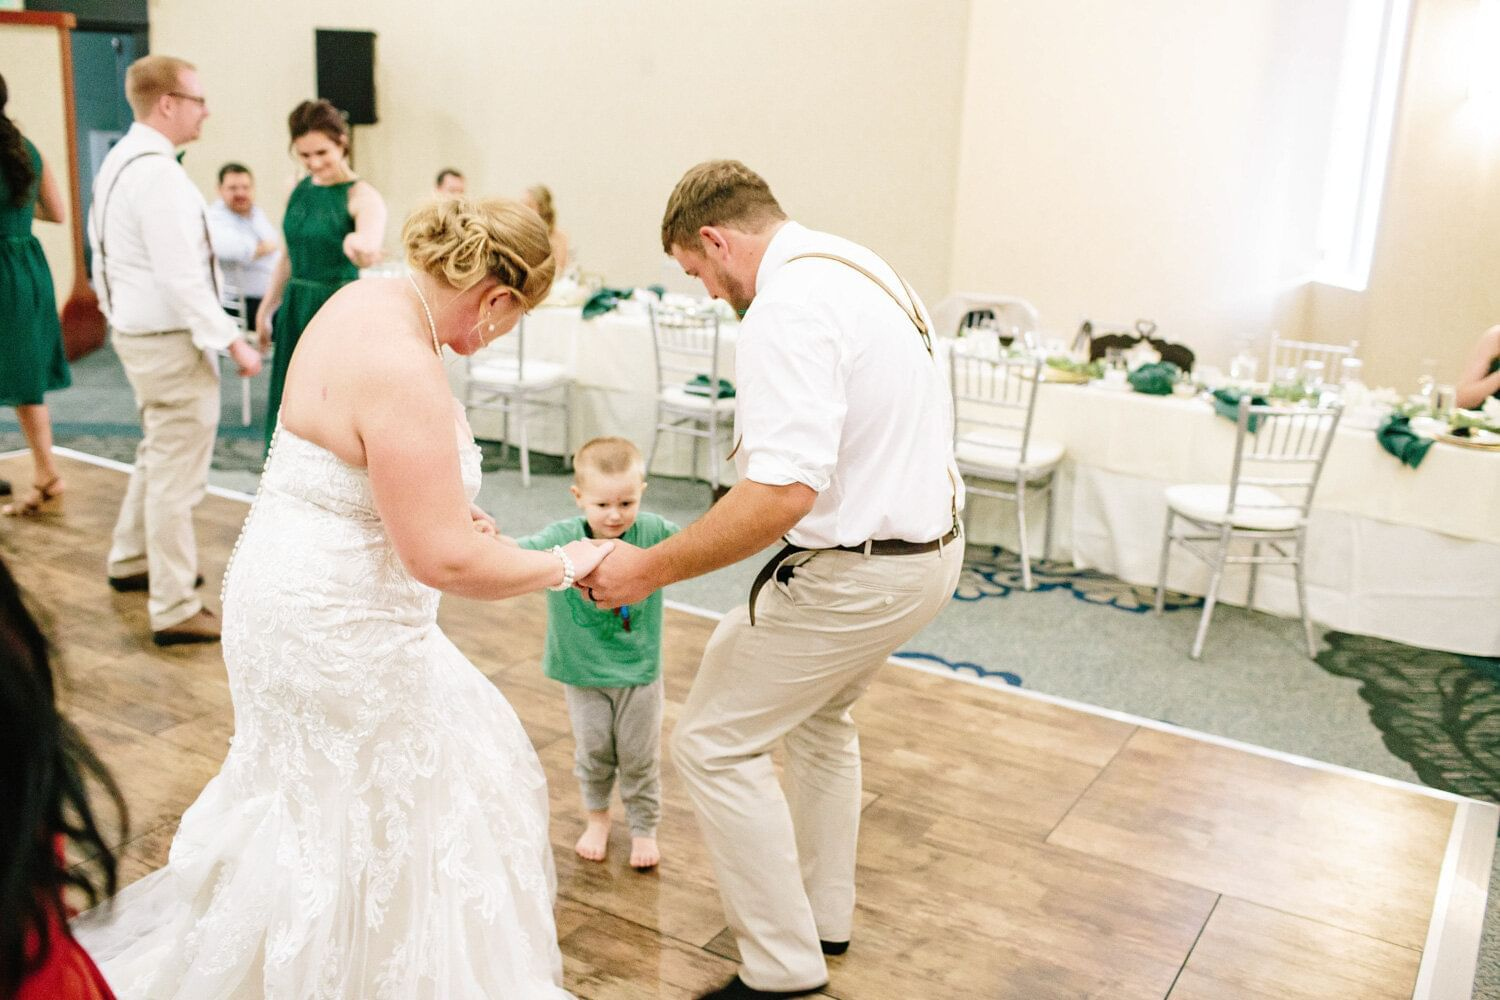 a bride and groom dance with a little kid